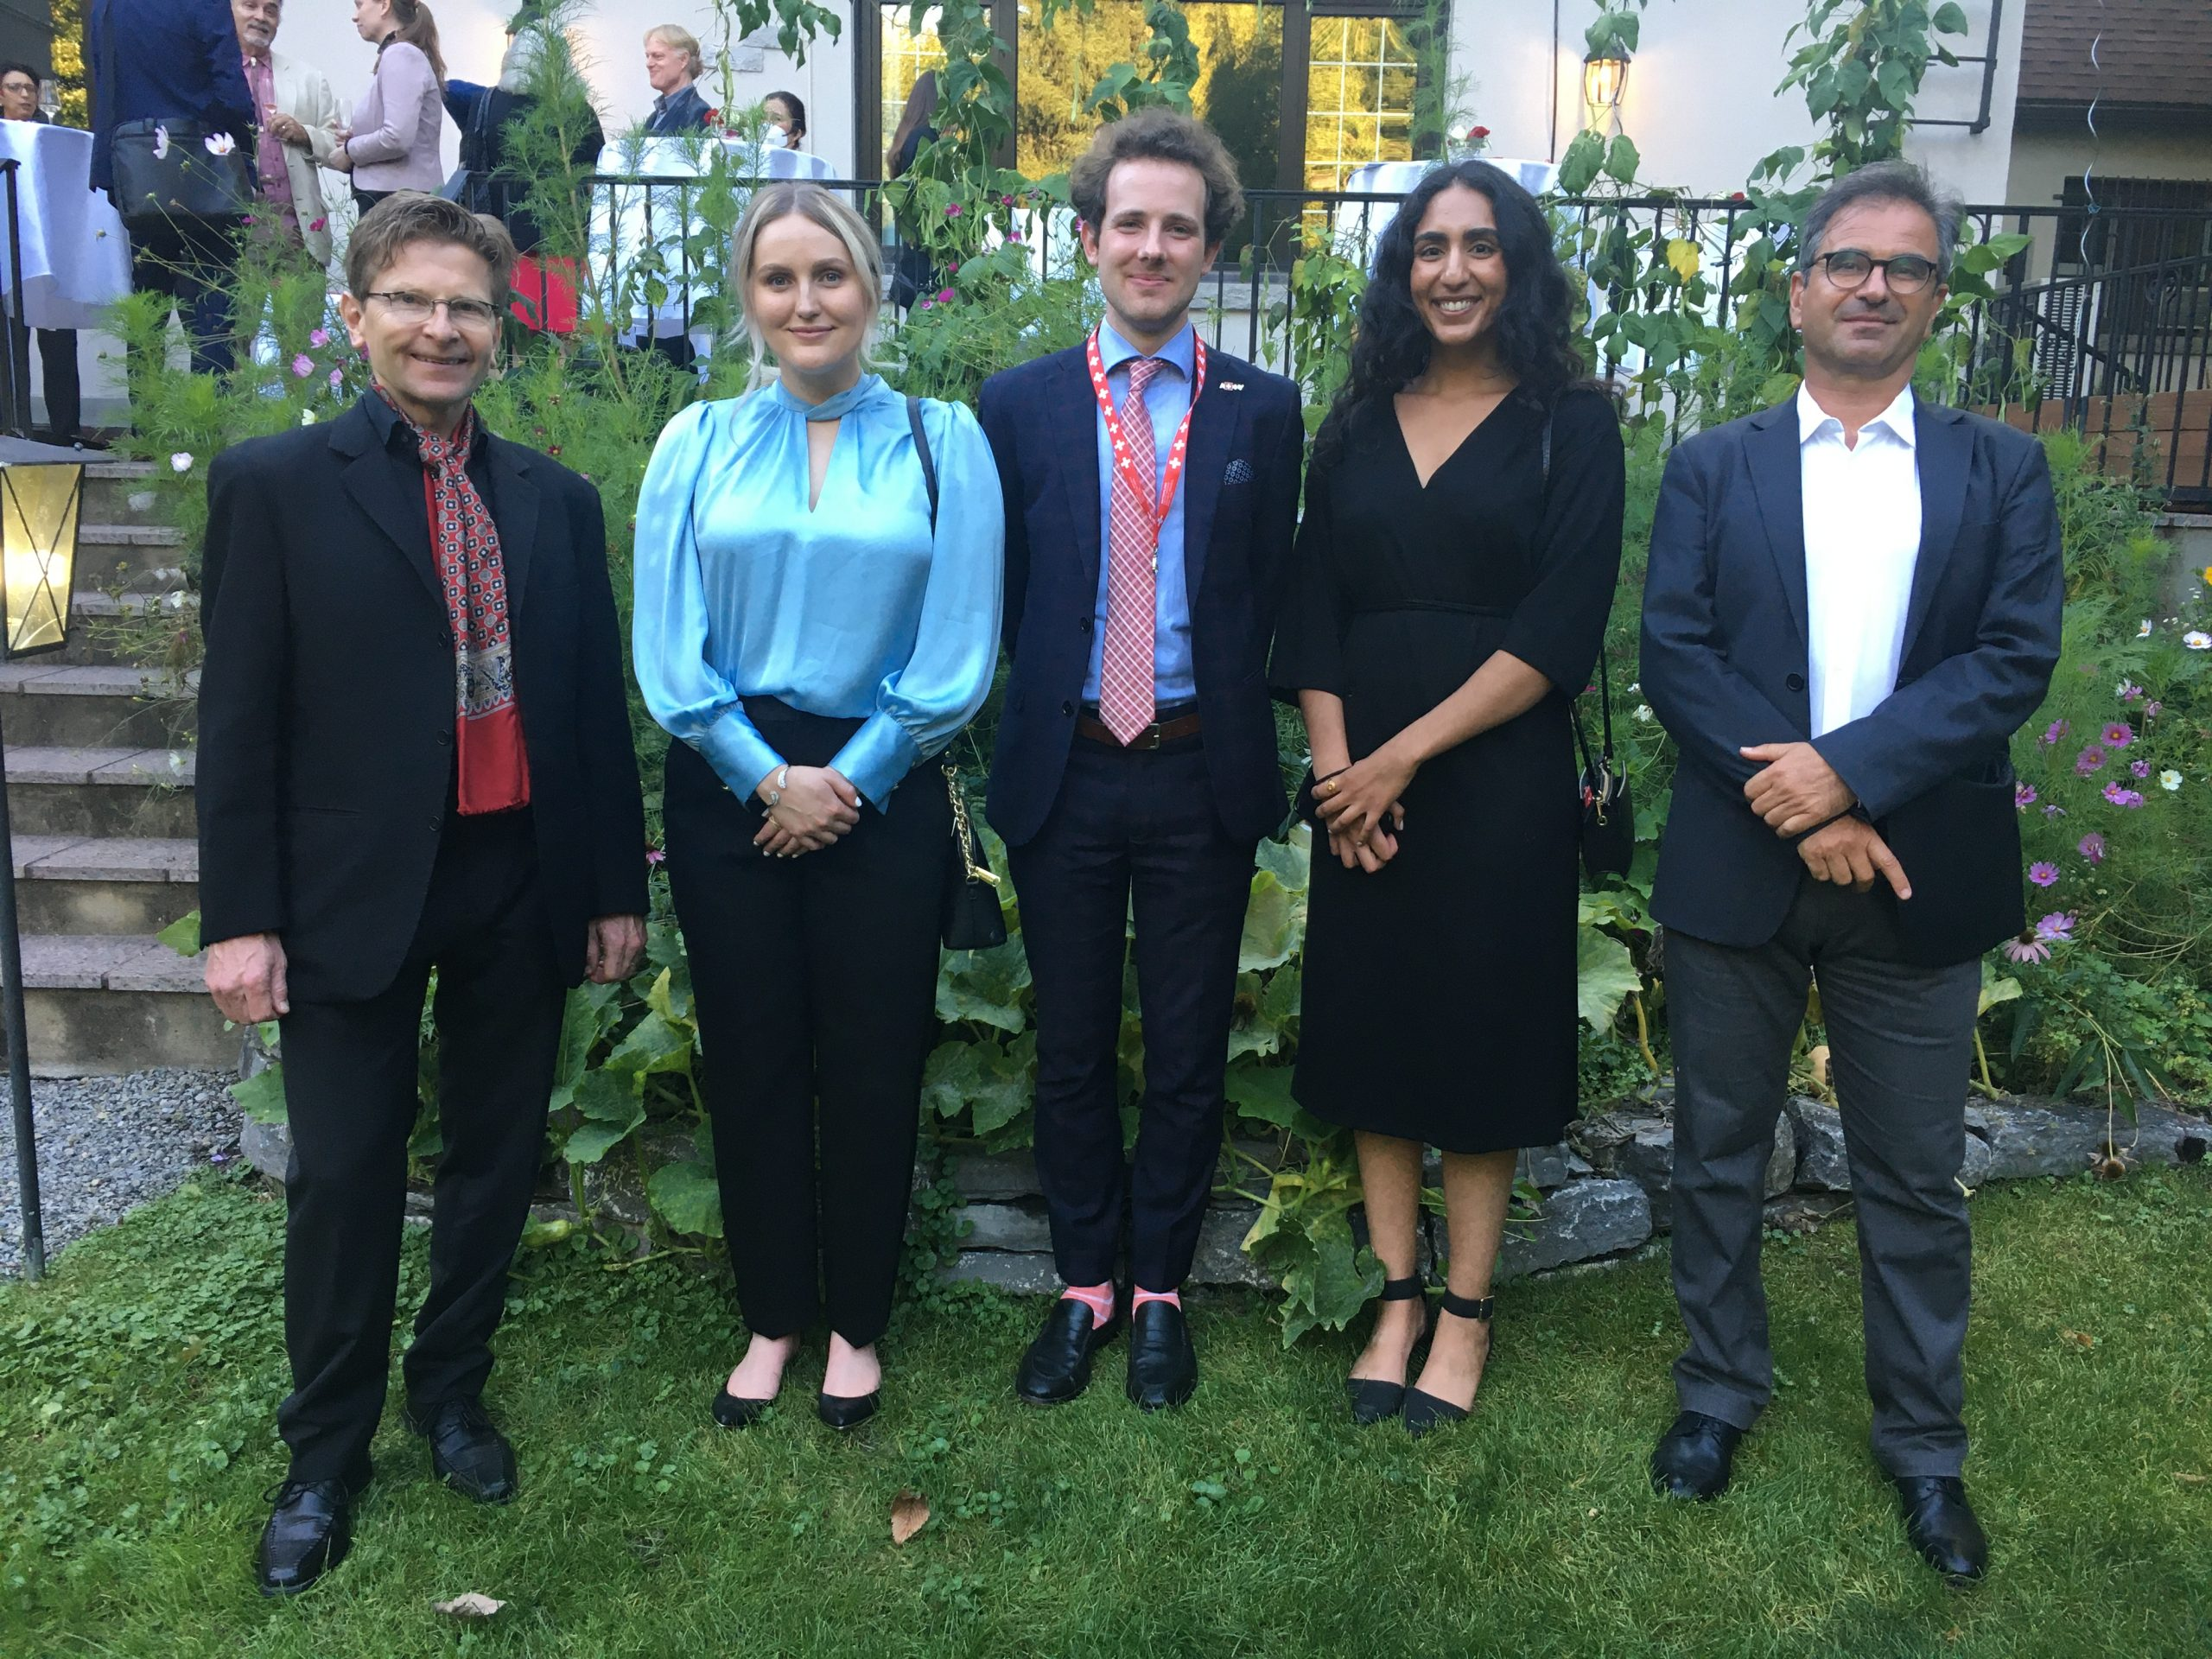 members of dual master's program with University of Lucerne